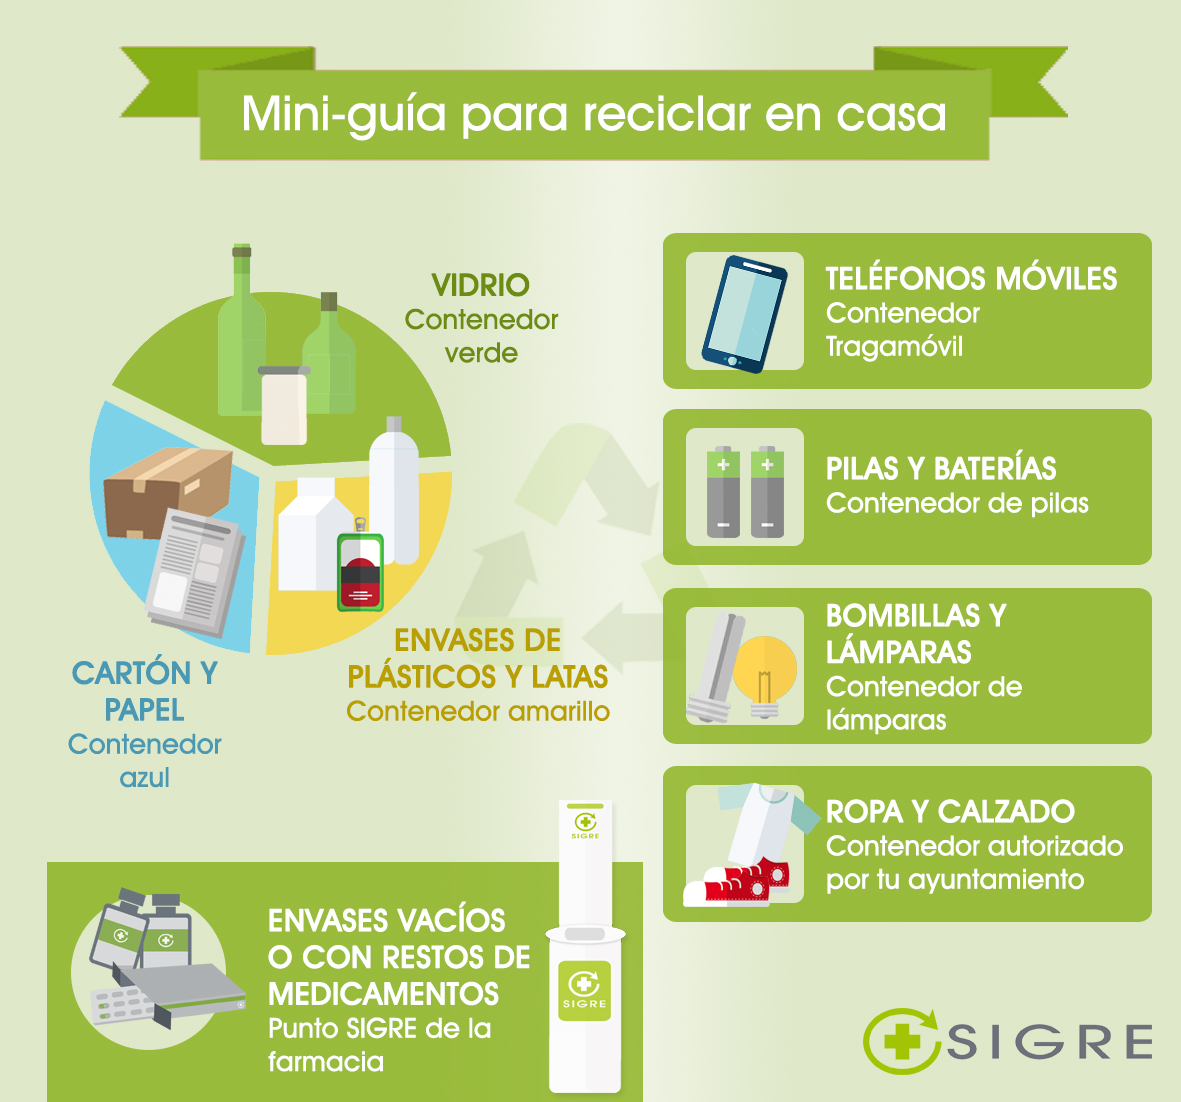 mini gu a para reciclar en casa blog corporativo de sigre